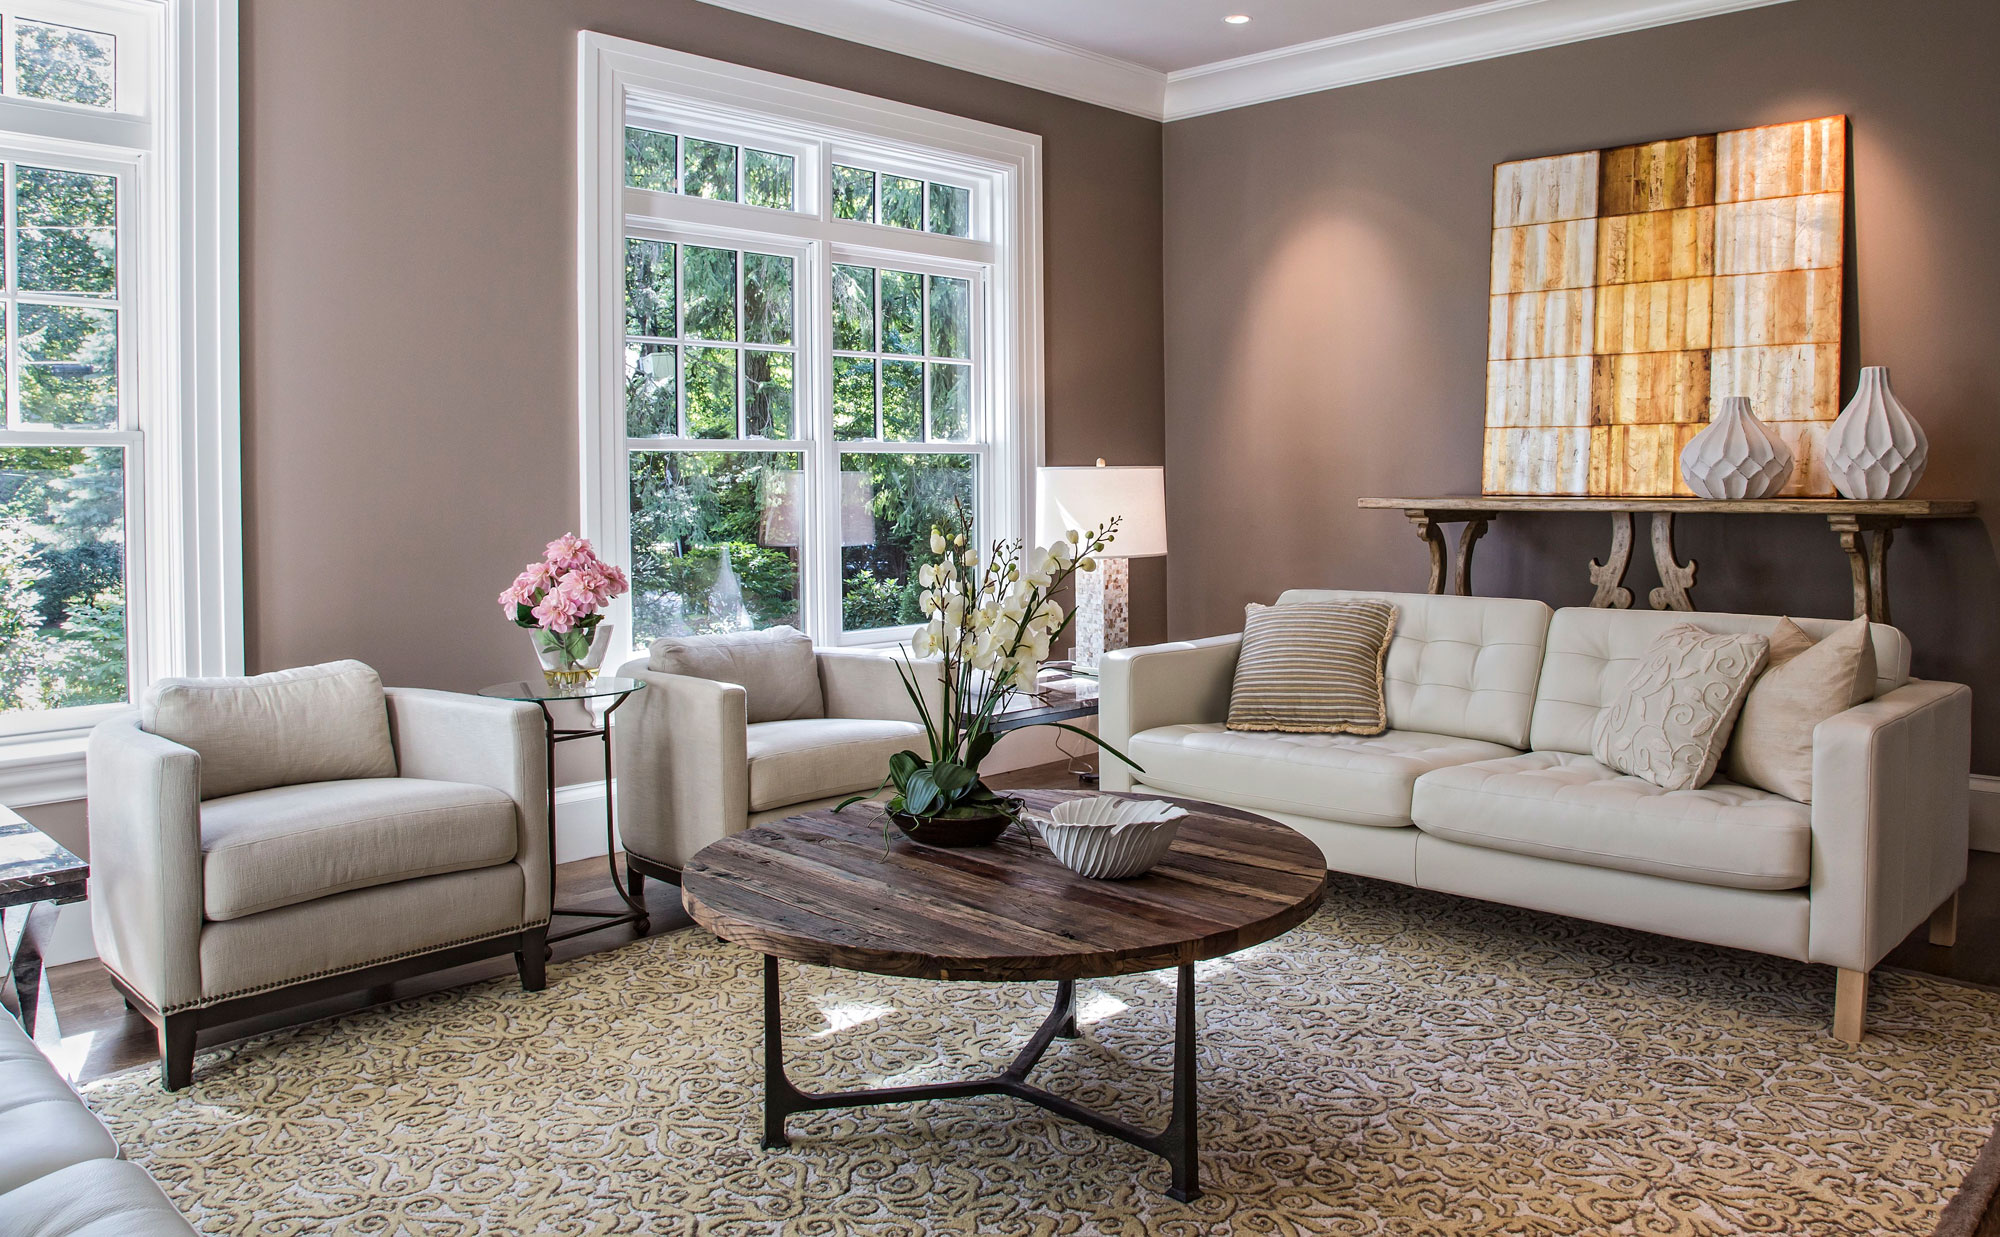 Living Room by Interior Designer Boston & Cambridge, Heidi Pribell